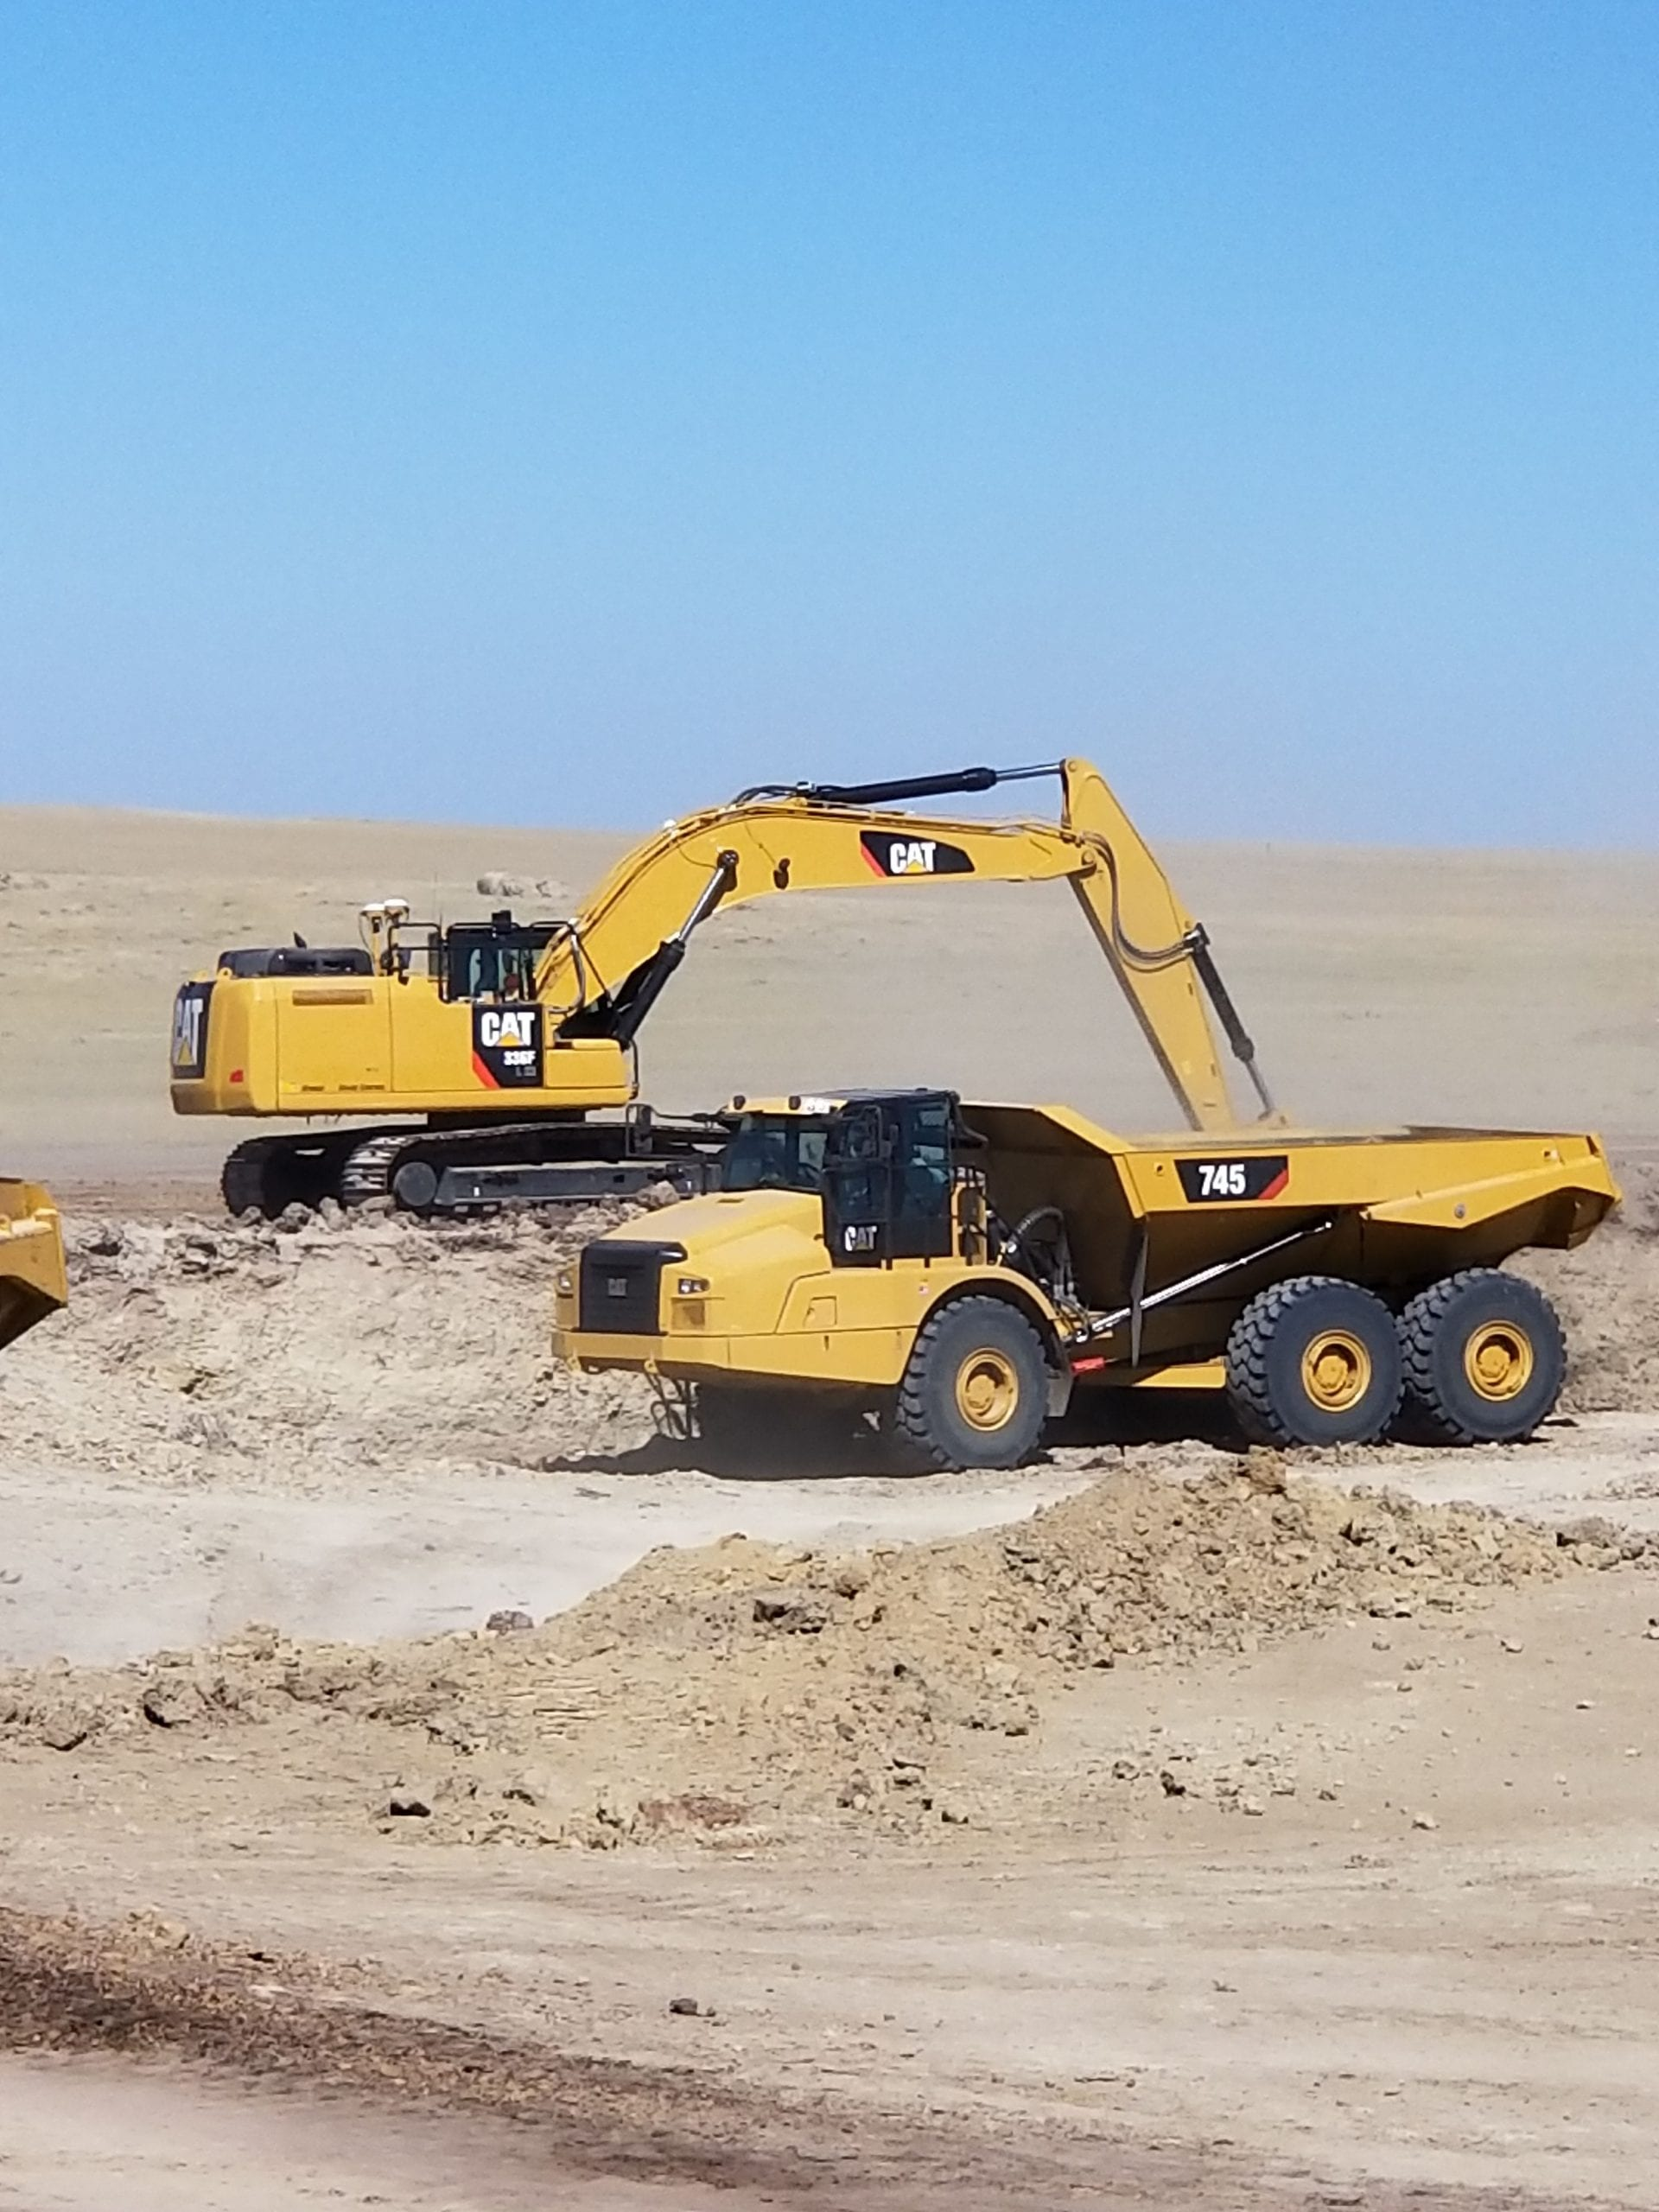 Excavator and articulated truck